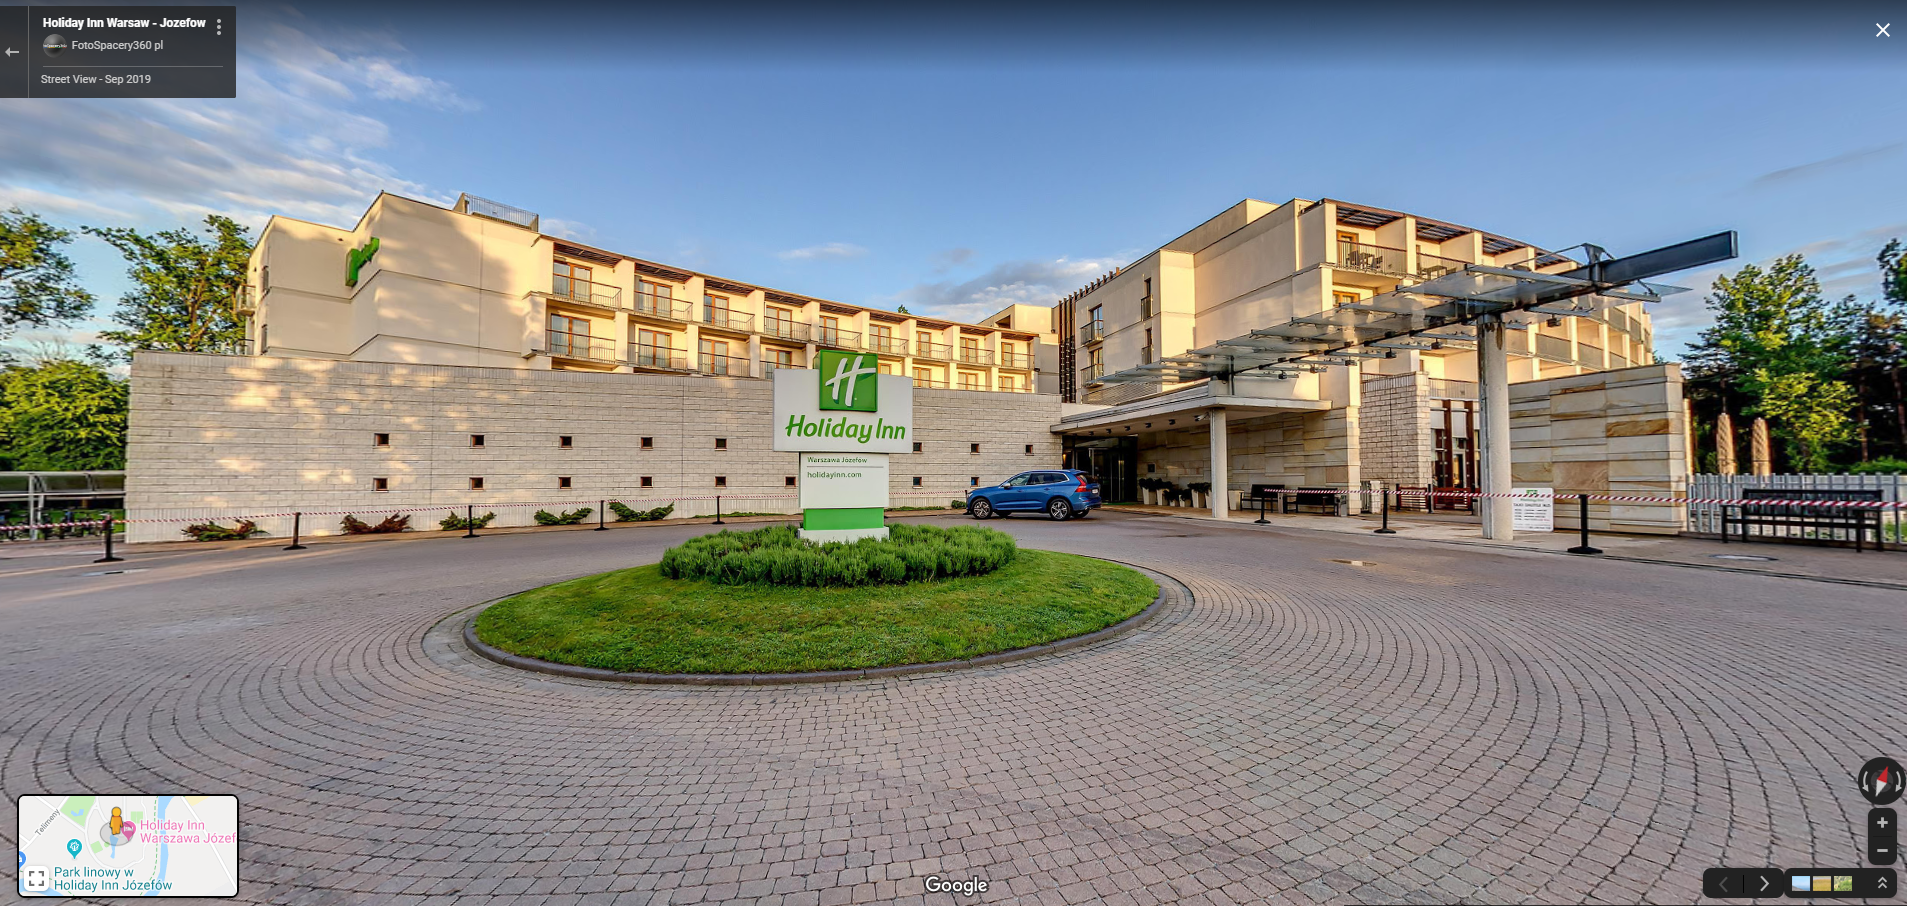 The September Featured Google Tour Winner is Warsaw, Poland's Holiday Inn, by Jakub Bauke